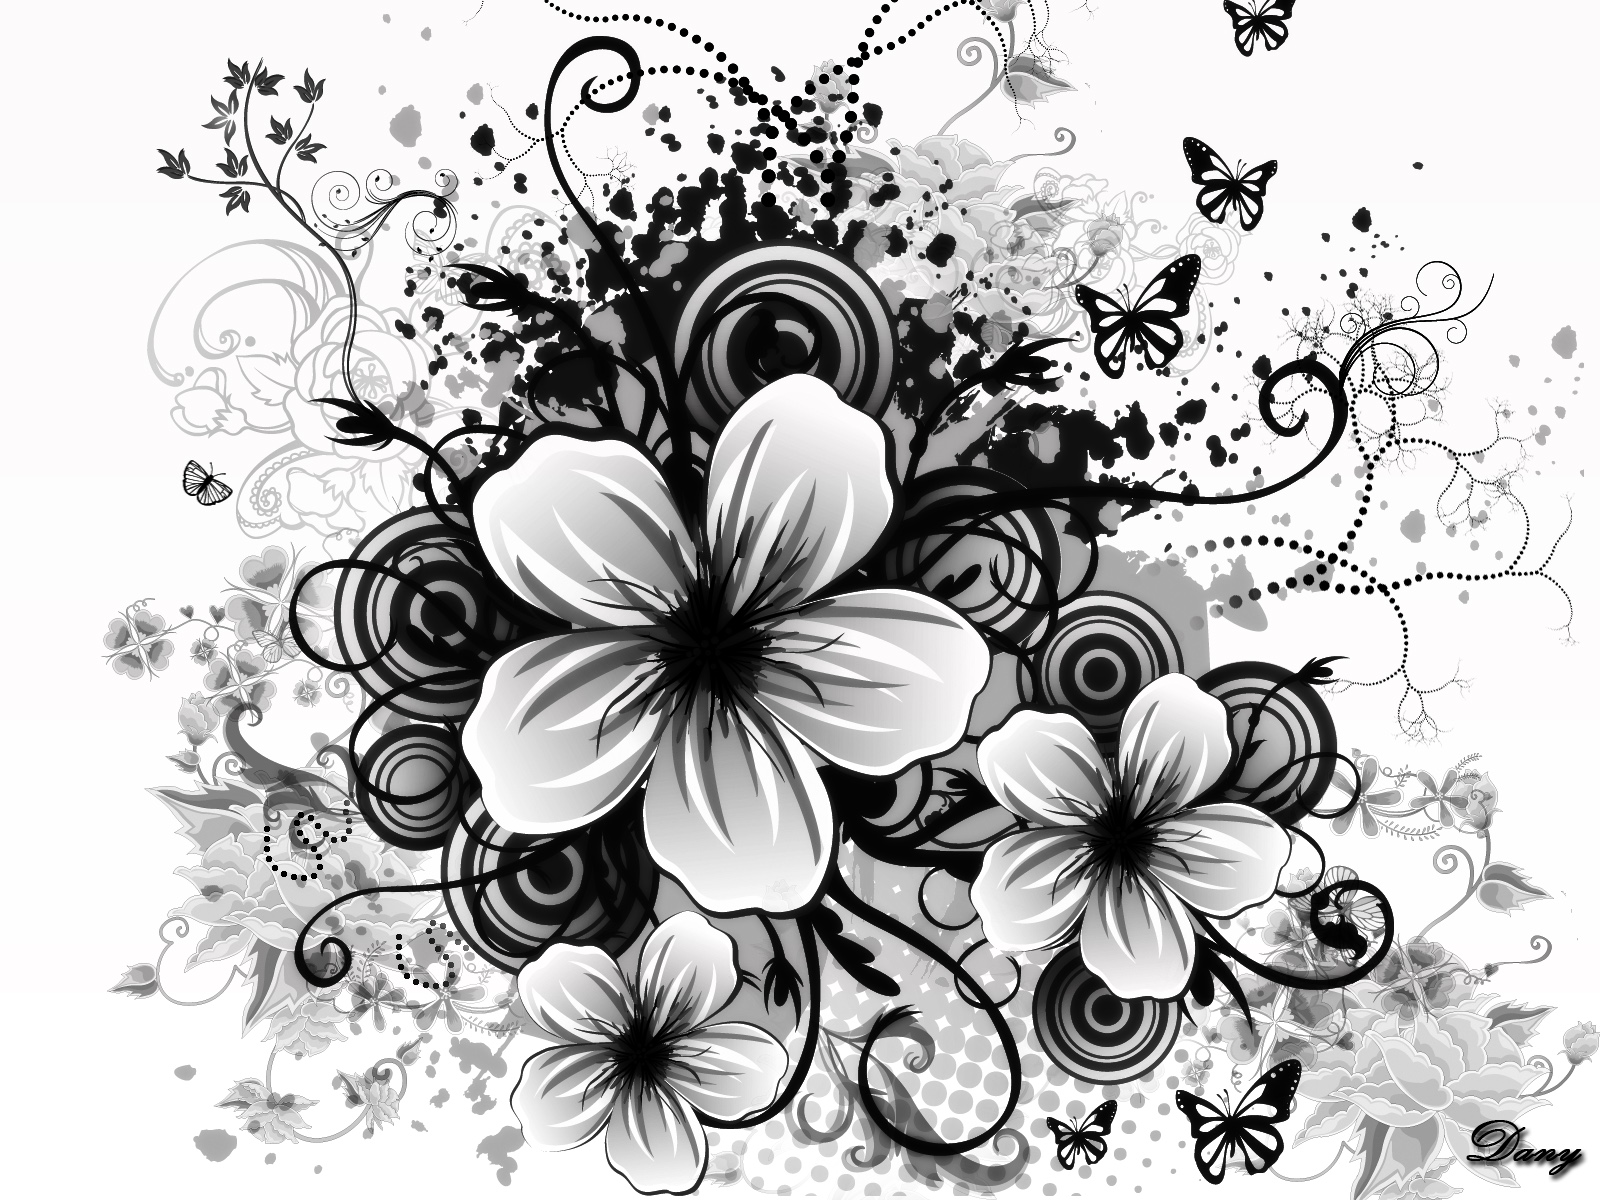 Black and white flowers wallpapers HD Wallpapers Backgrounds 1600x1200